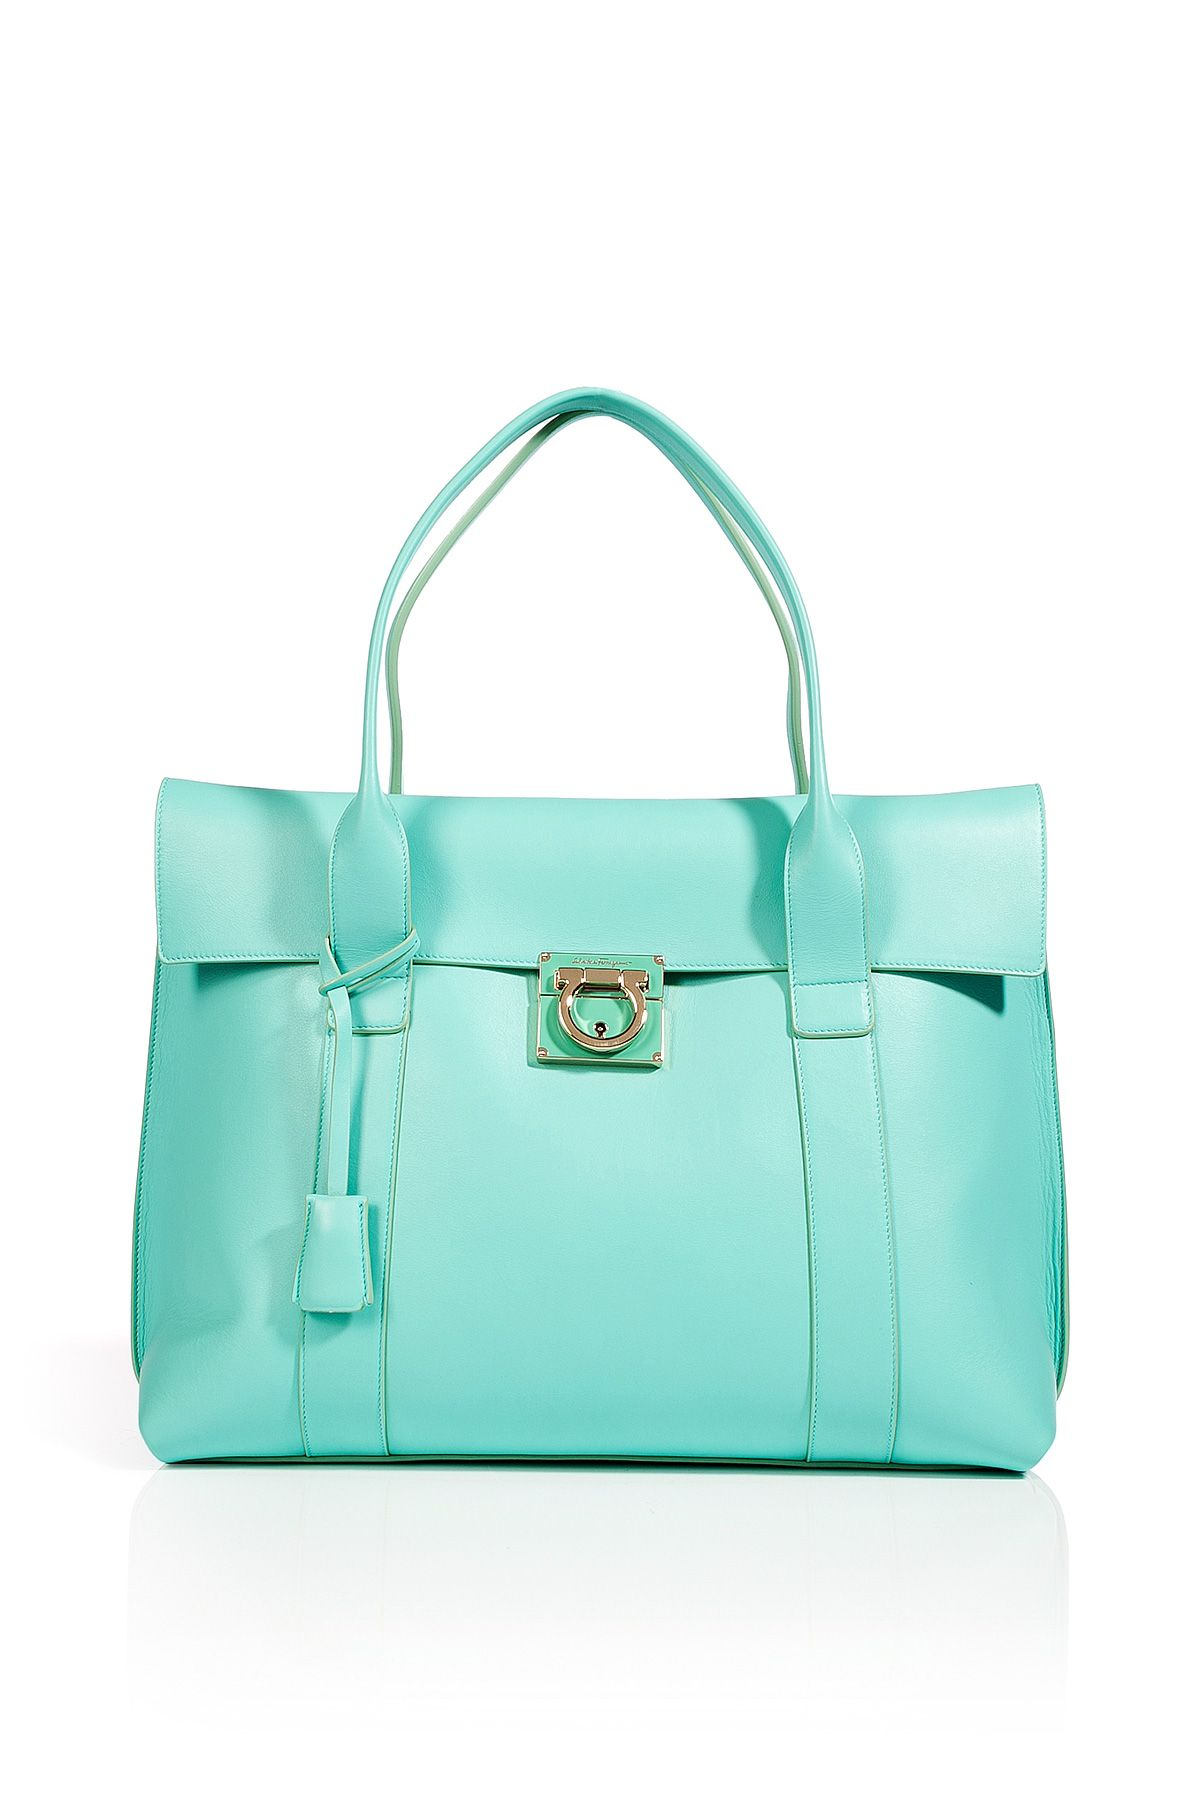 fb5ffc27c19a Turquoise Leather Sookie Tote by SALVATORE FERRAGAMO